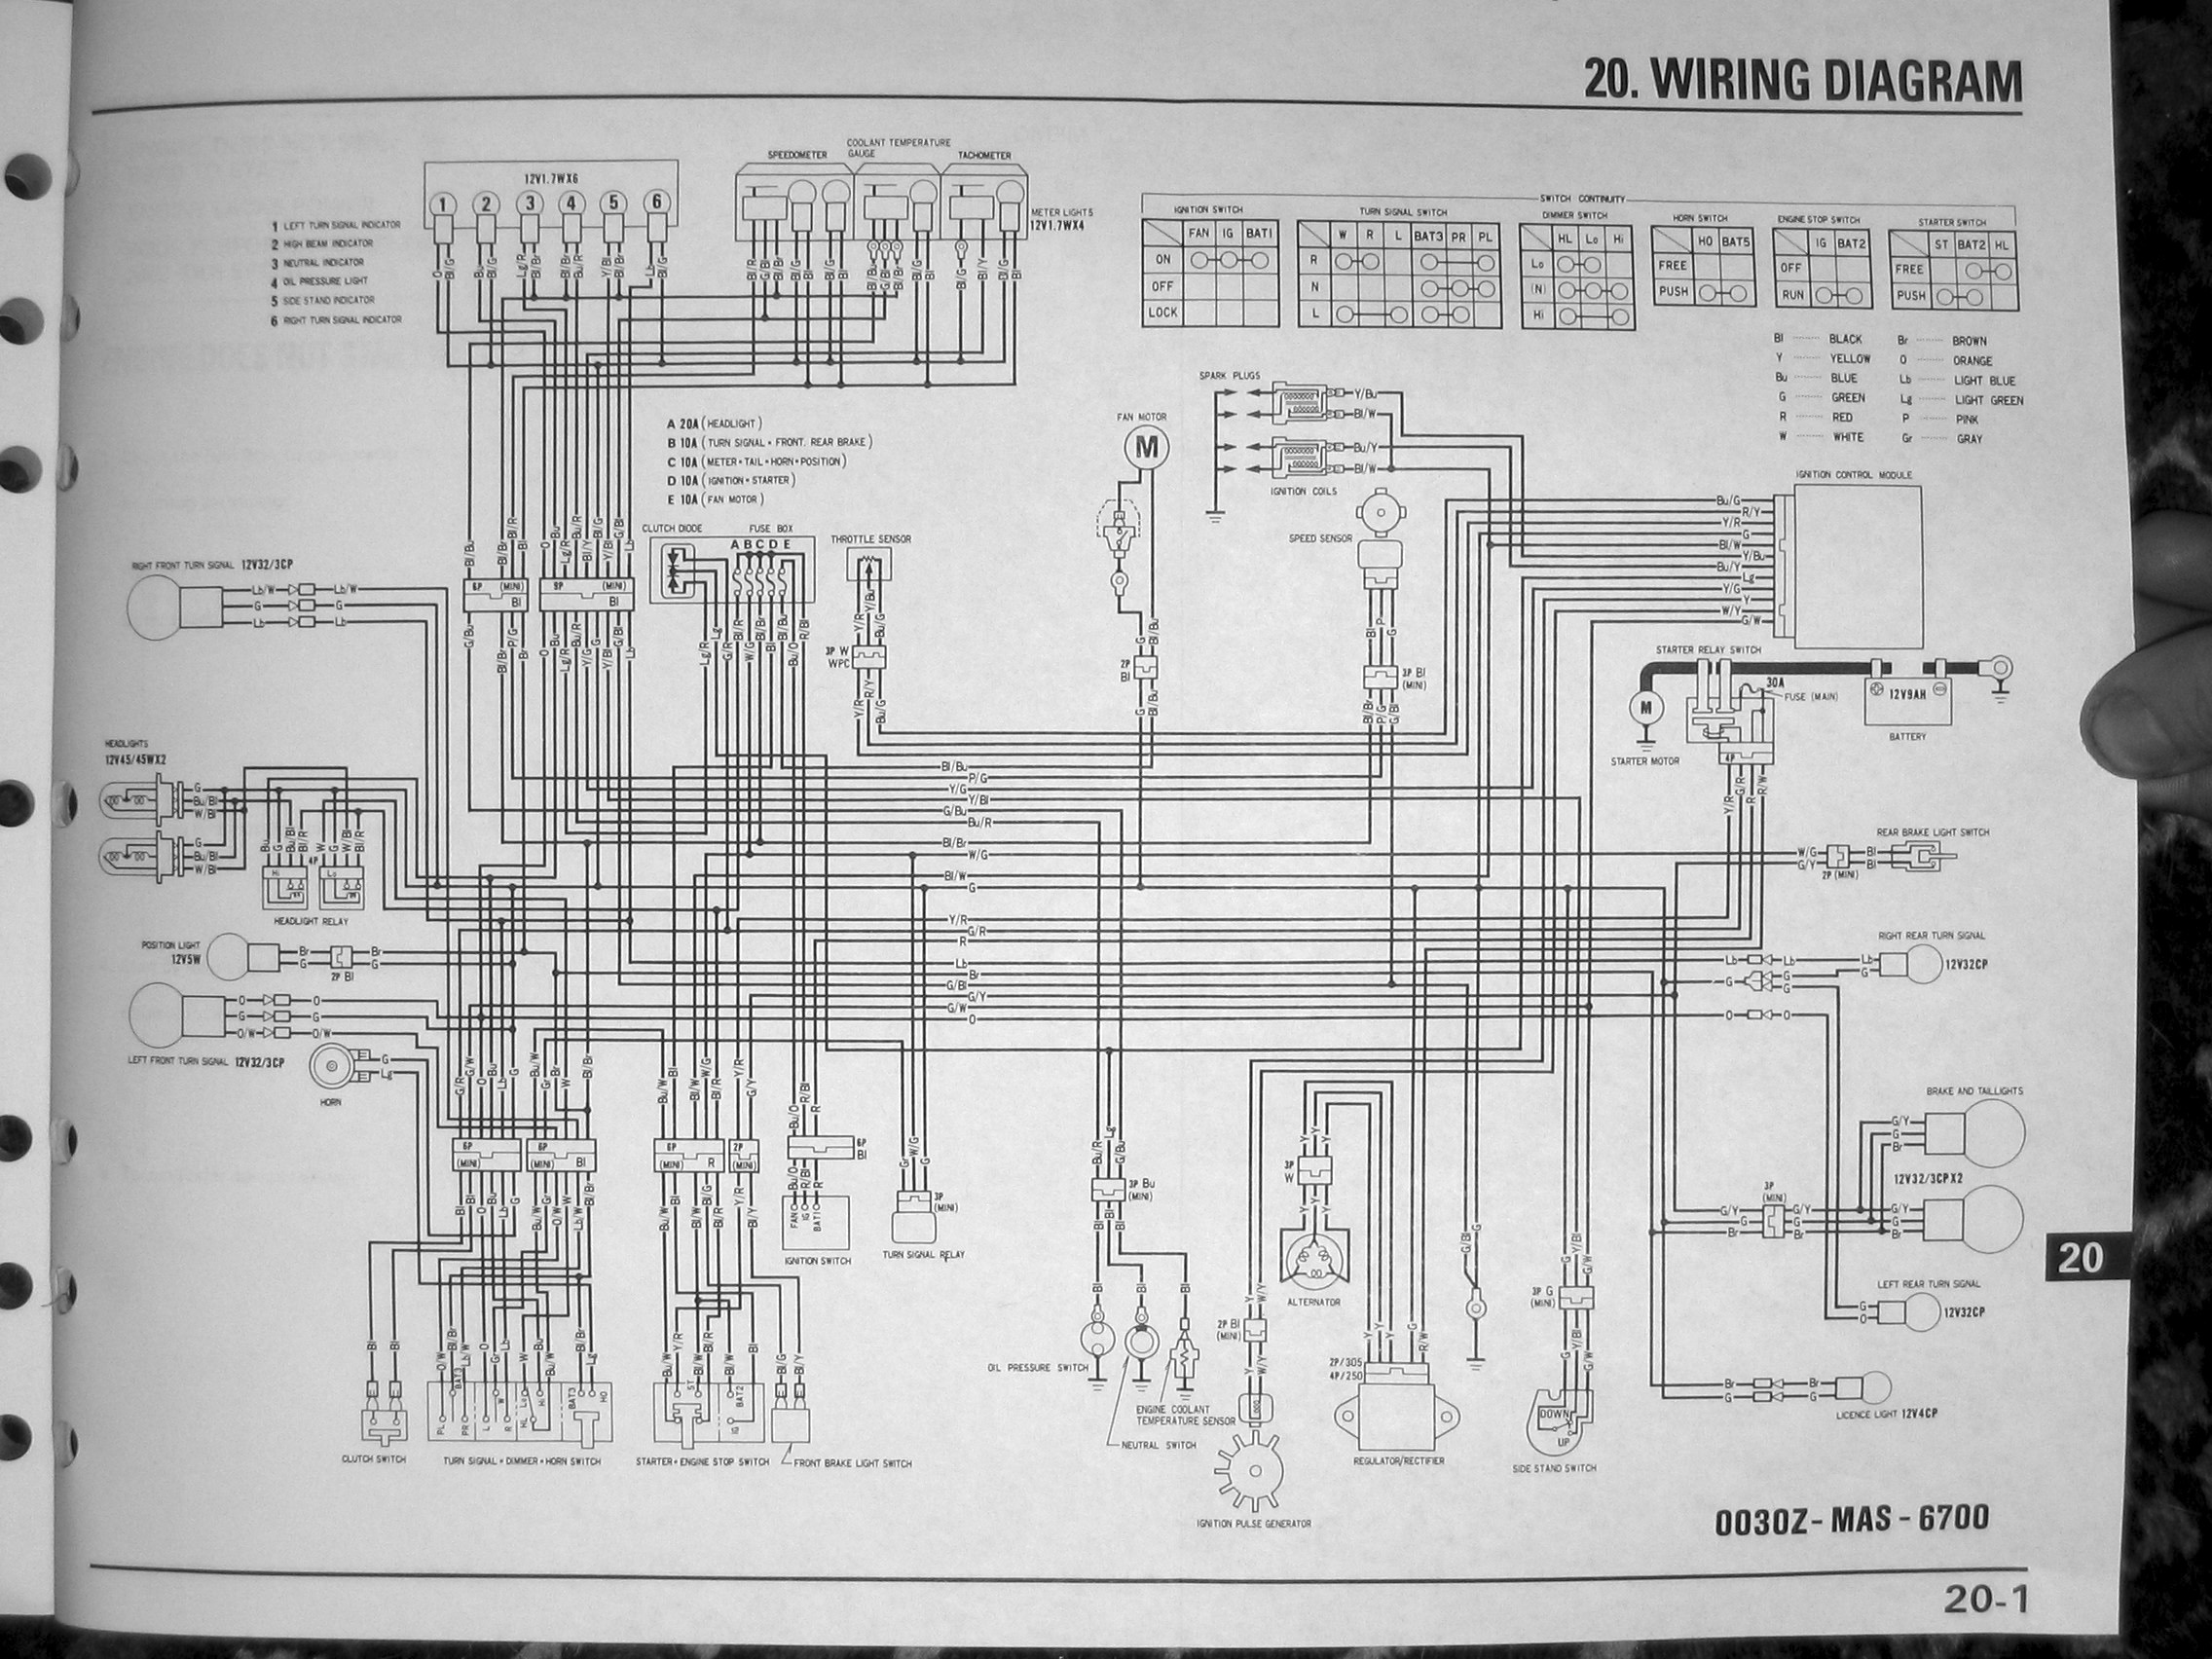 suzuki gsxr 1100 wiring diagram 2000 gsxr 750 wiring diagram 2000 free engine image for 1997 suzuki gsxr 600v wiring diagram